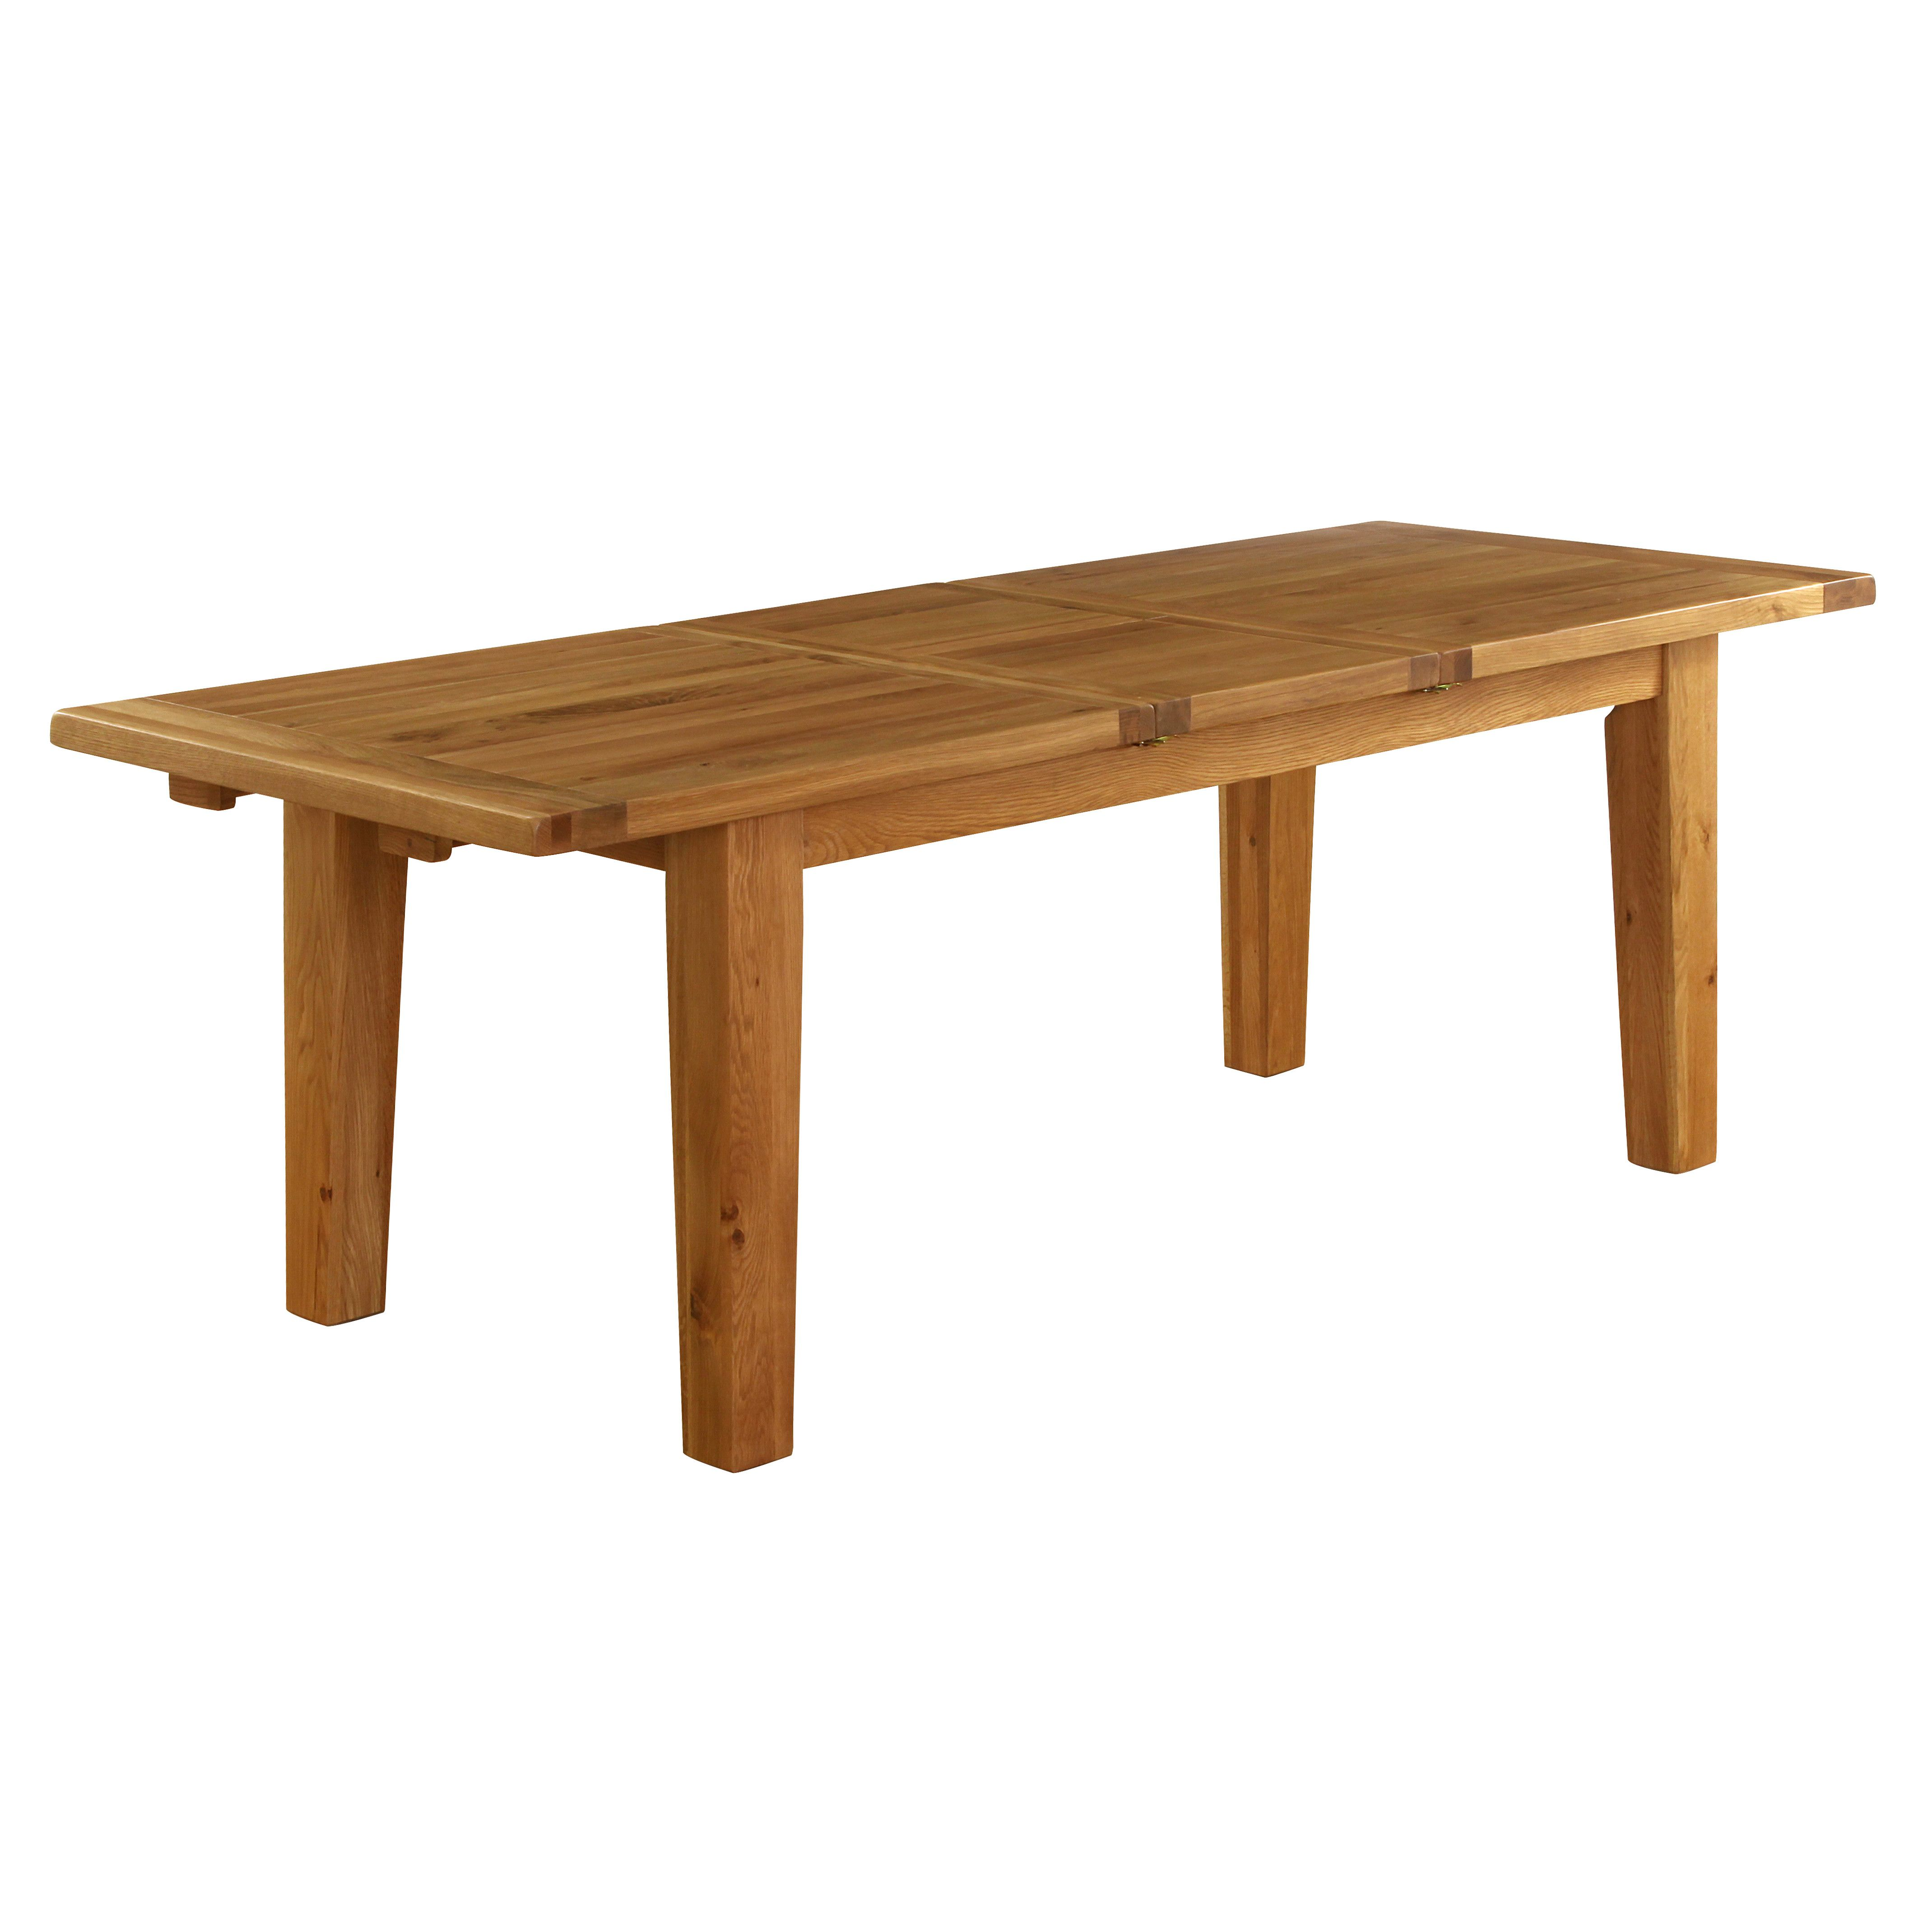 Alpen Home Millais Premium Extendable Dining Table 180 230 £558